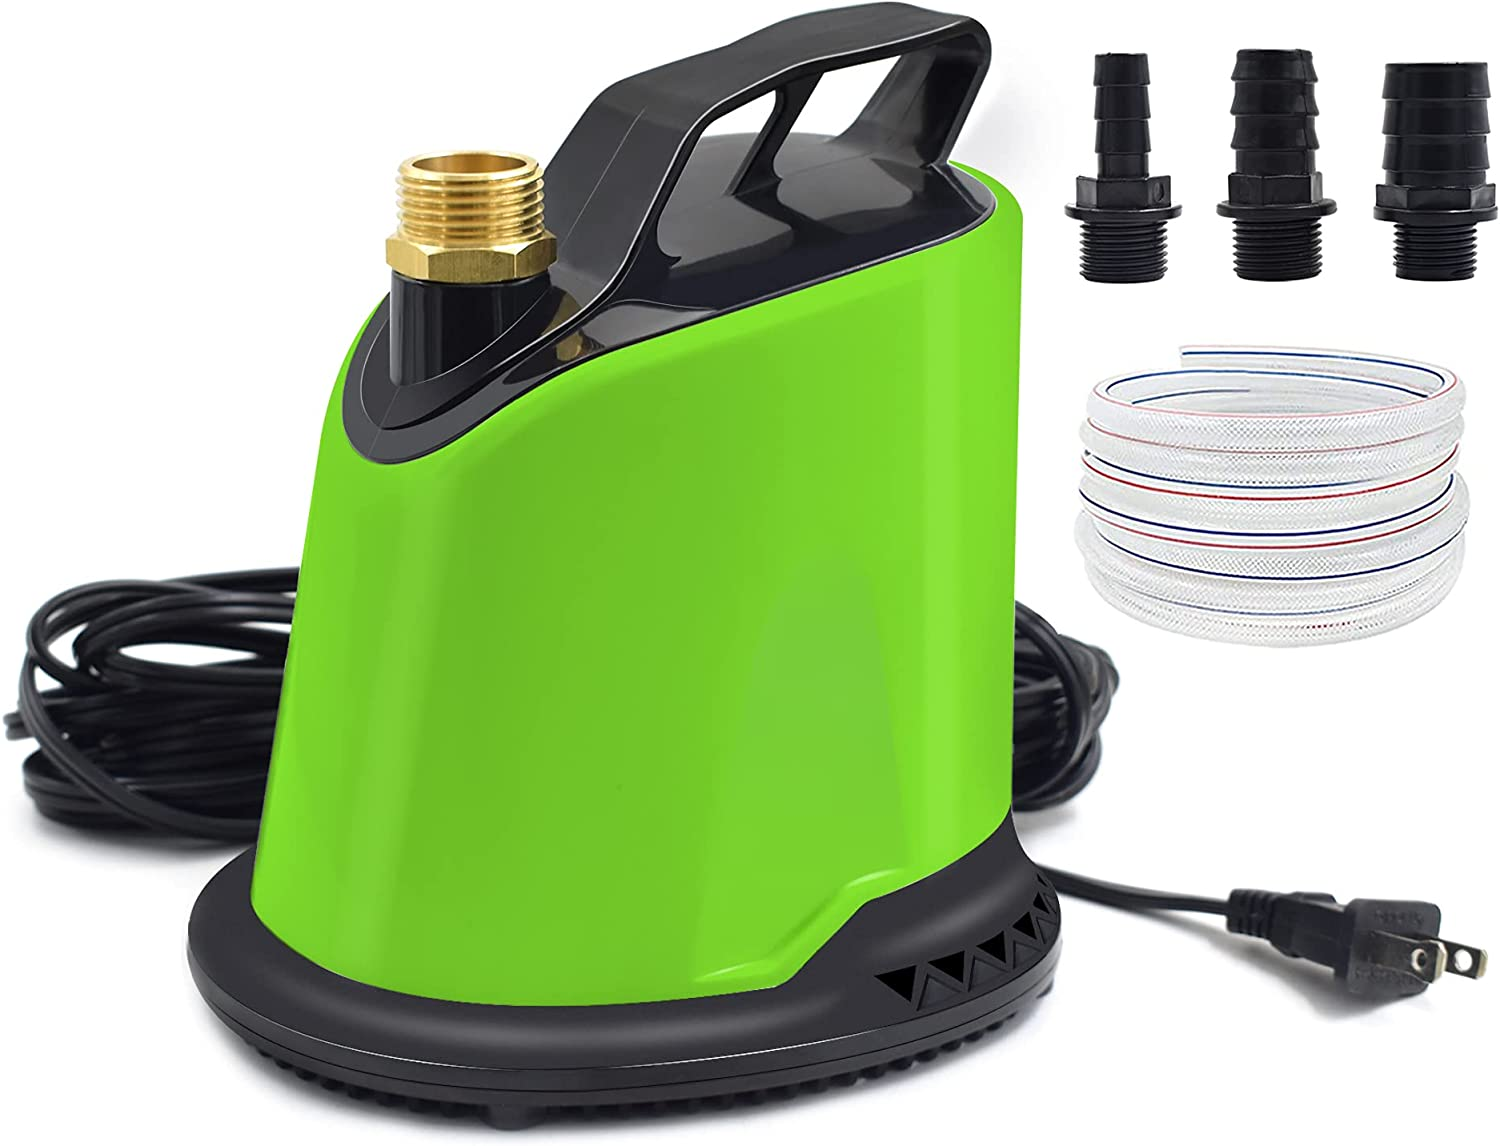 AgiiMan Pool Cover Pump, 1100 GPH Submersible Water Pump for Pool Draining with Adjustable Filter, 16' Drainage Hose and 25' Power Cord, 4 Adapters, Green